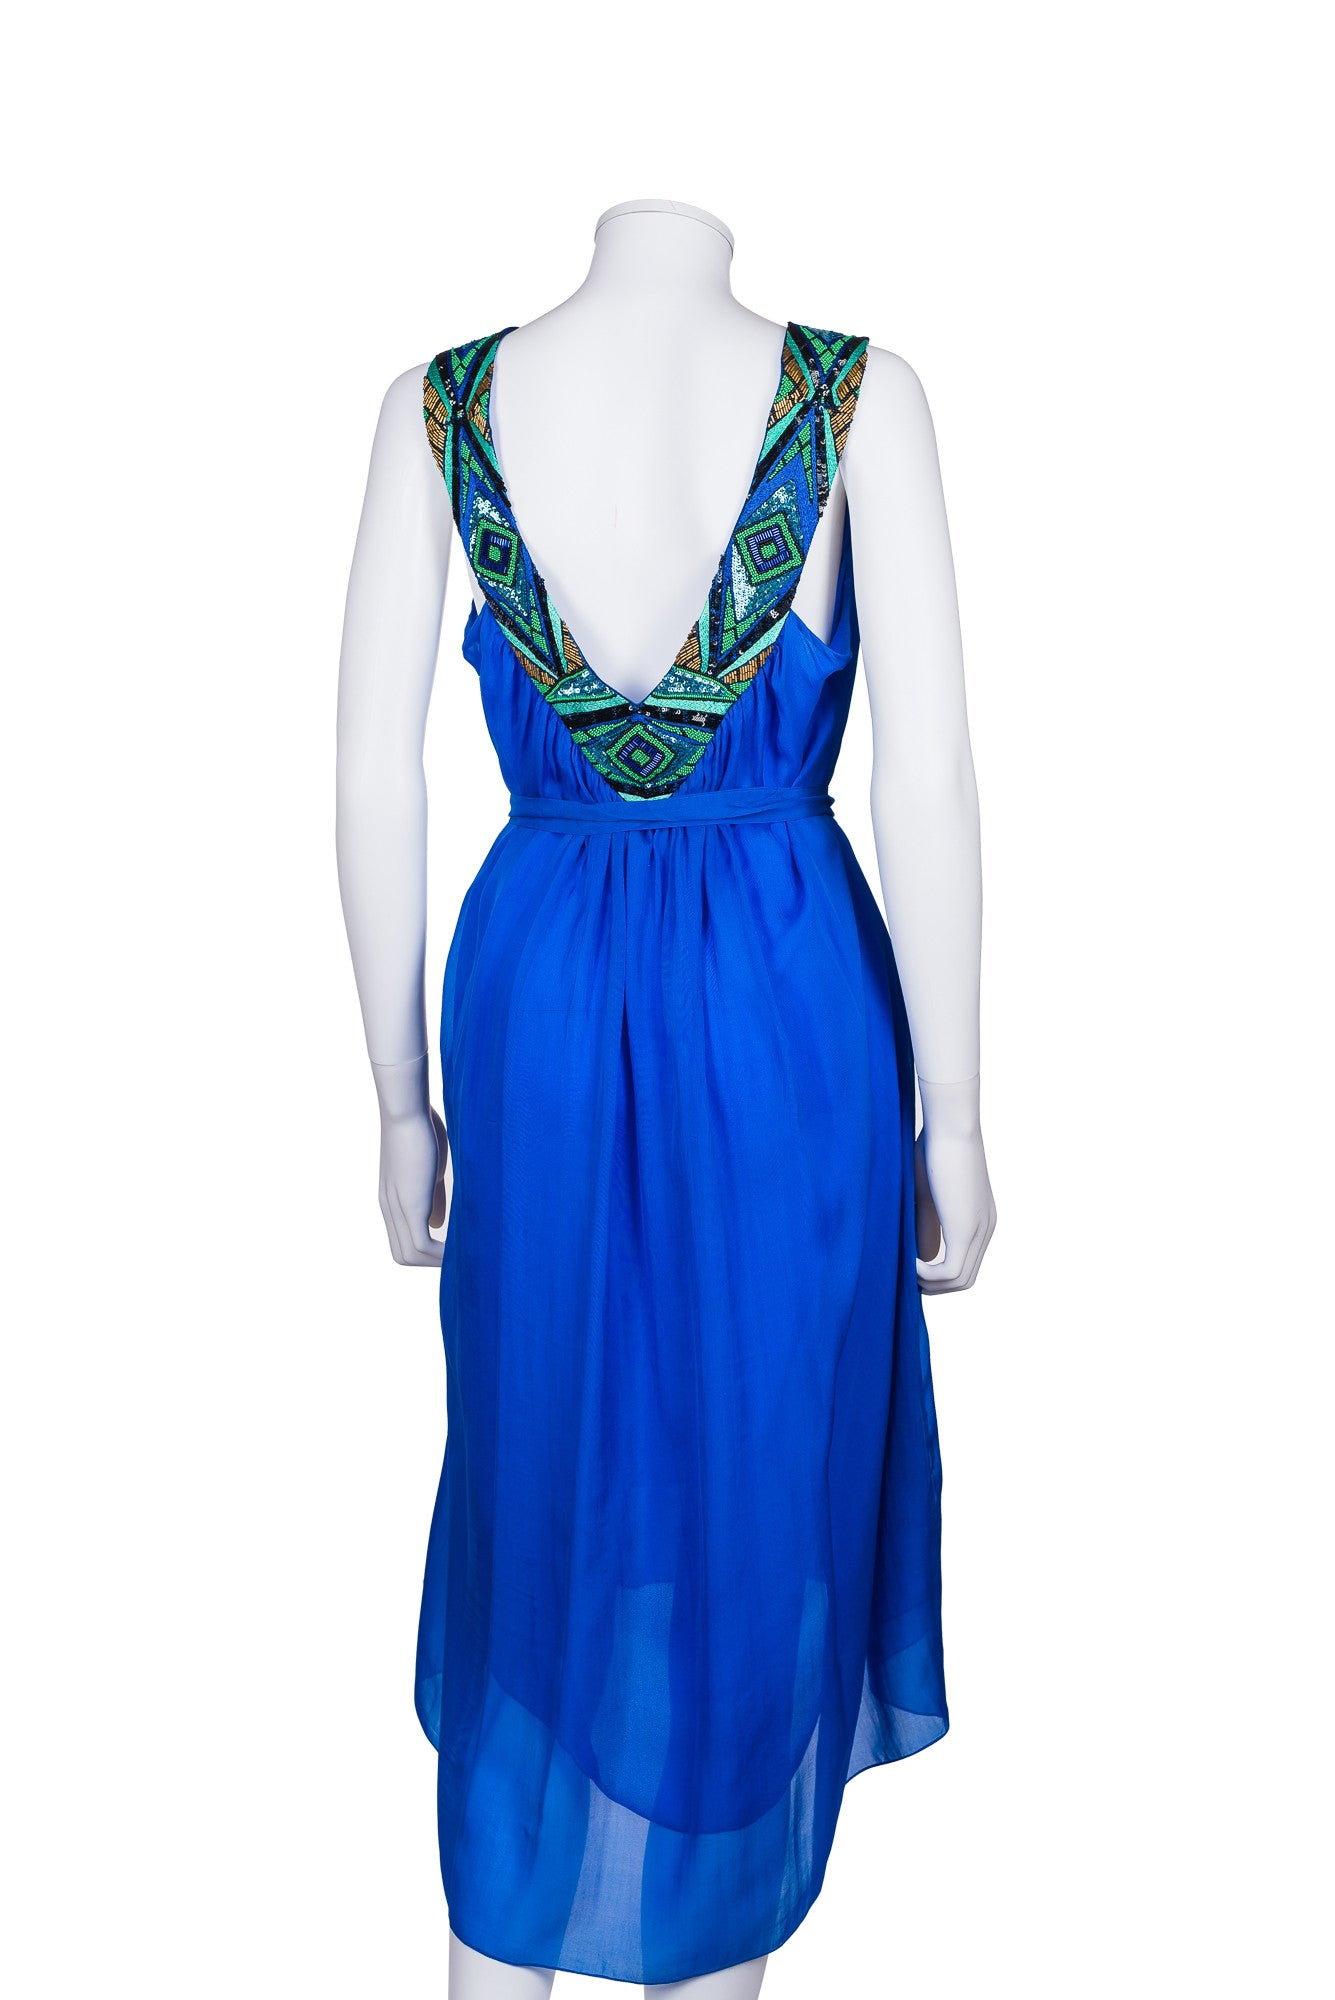 MATTHEW WILLIAMSON Sleeveless Embellished Dress